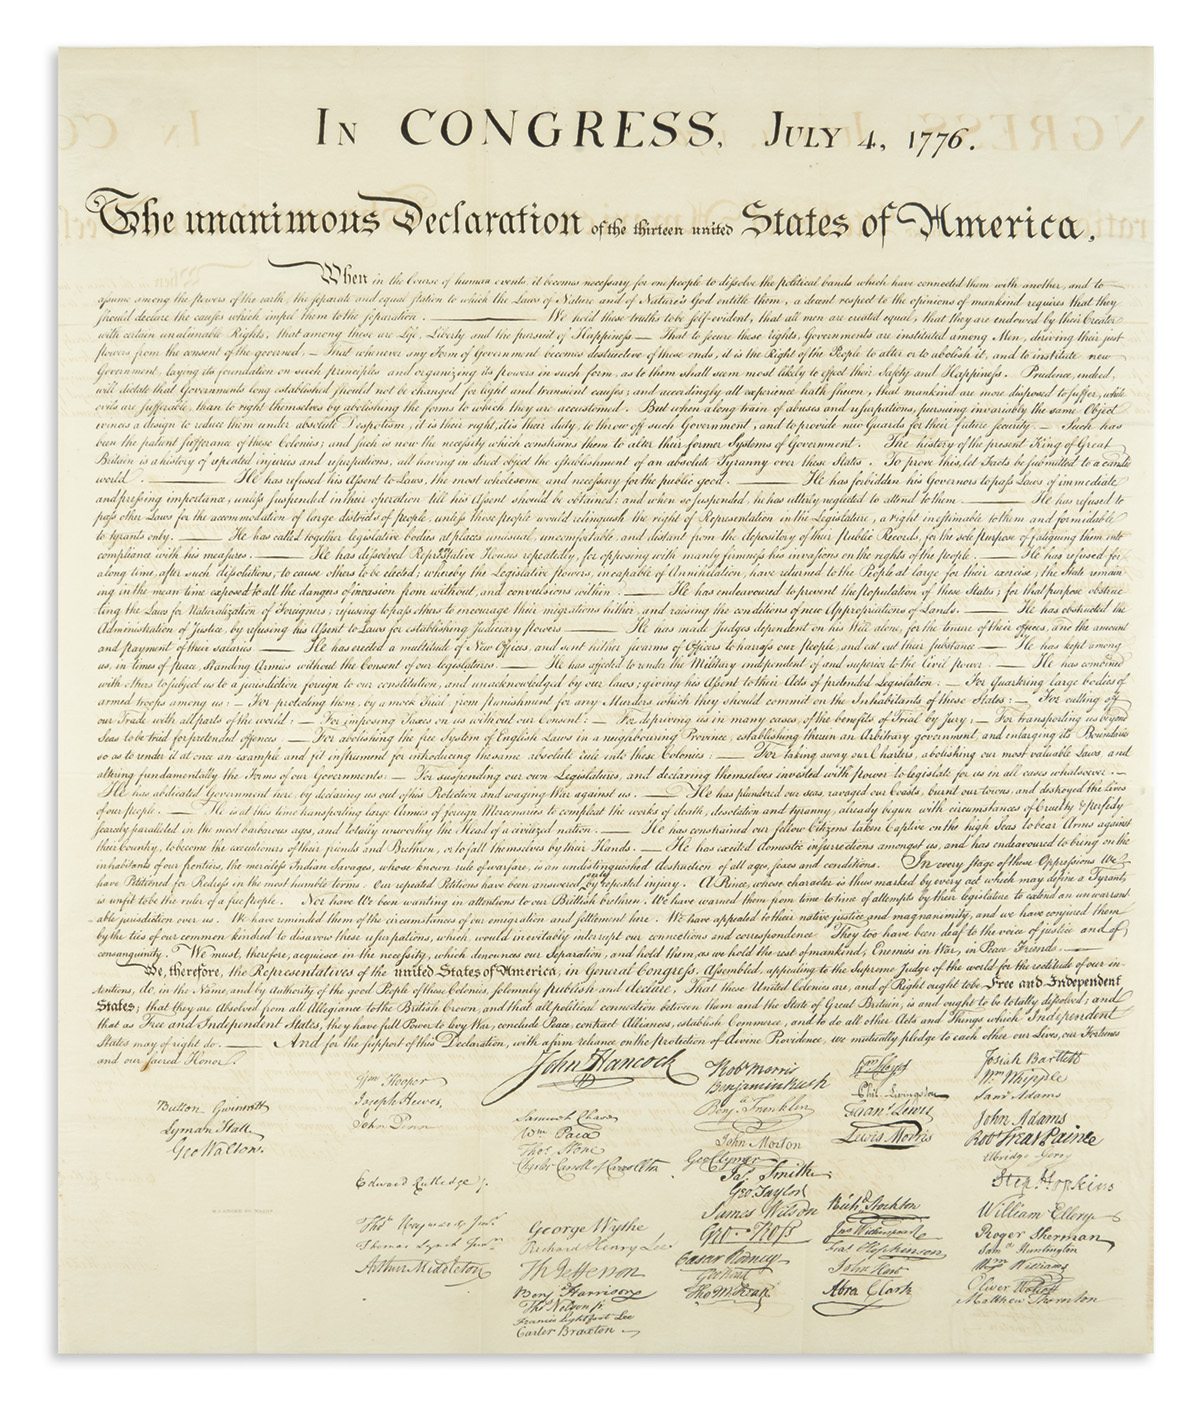 (DECLARATION OF INDEPENDENCE.) Stone, William J.; engraver. In Congress, July 4, 1776. The Unanimous Declaration